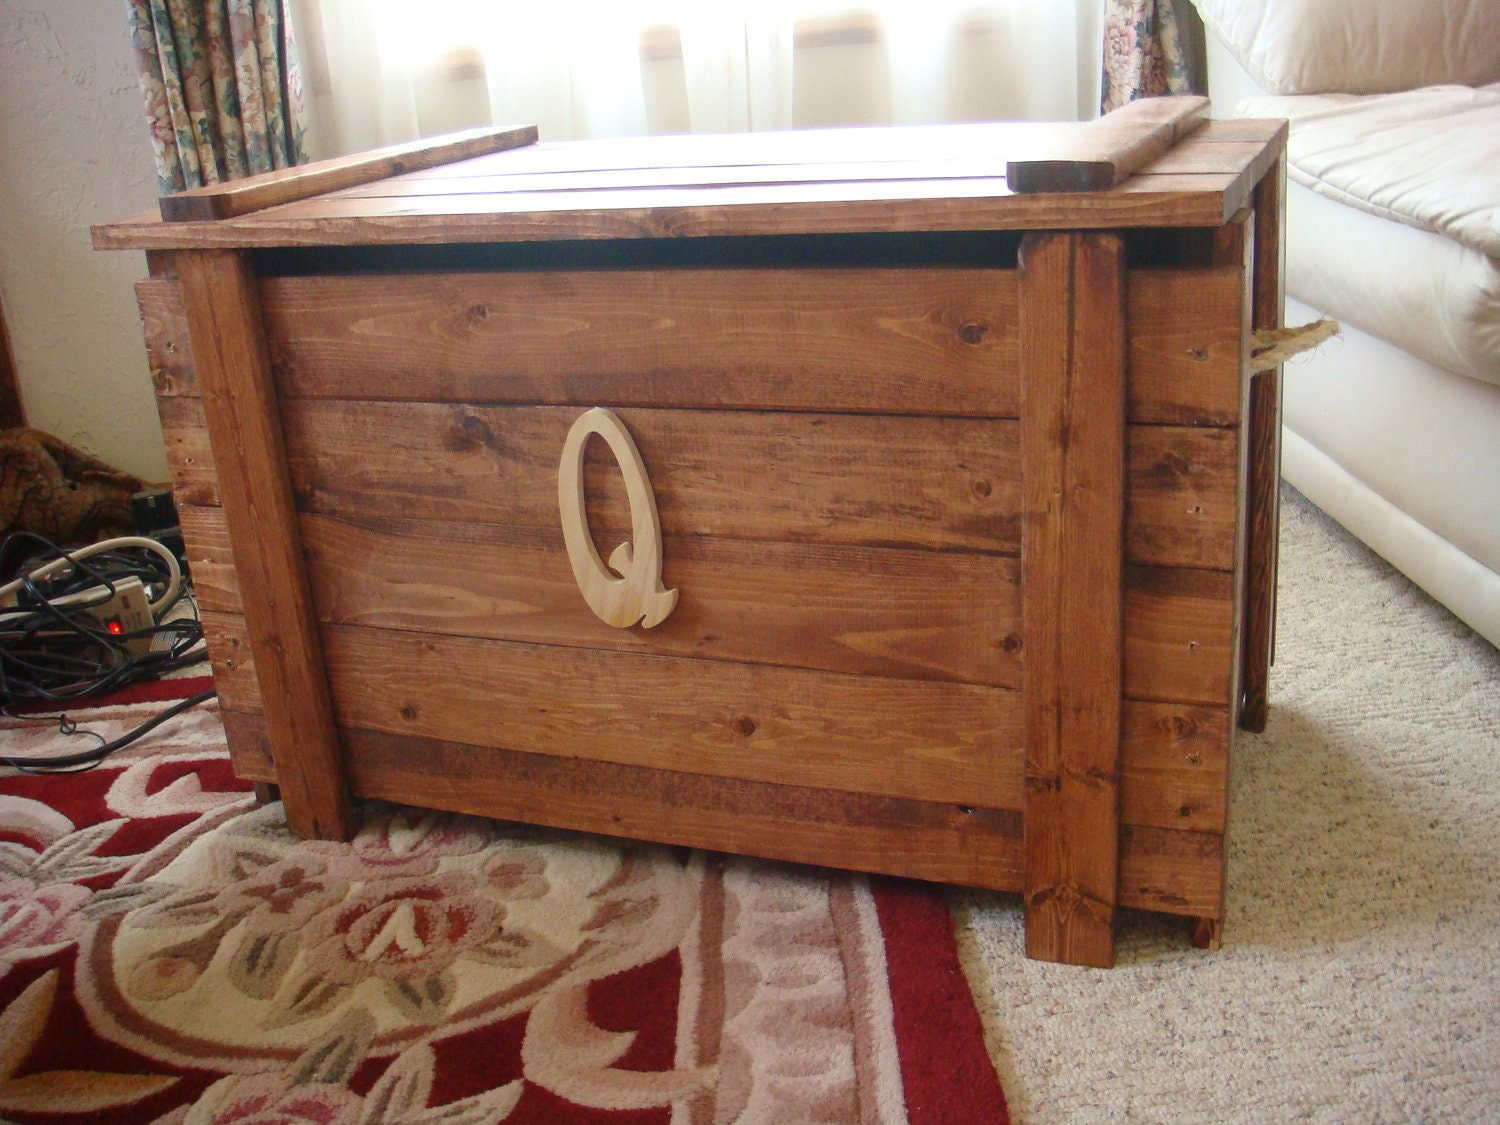 Permalink to How To Make A Wood Toy Chest